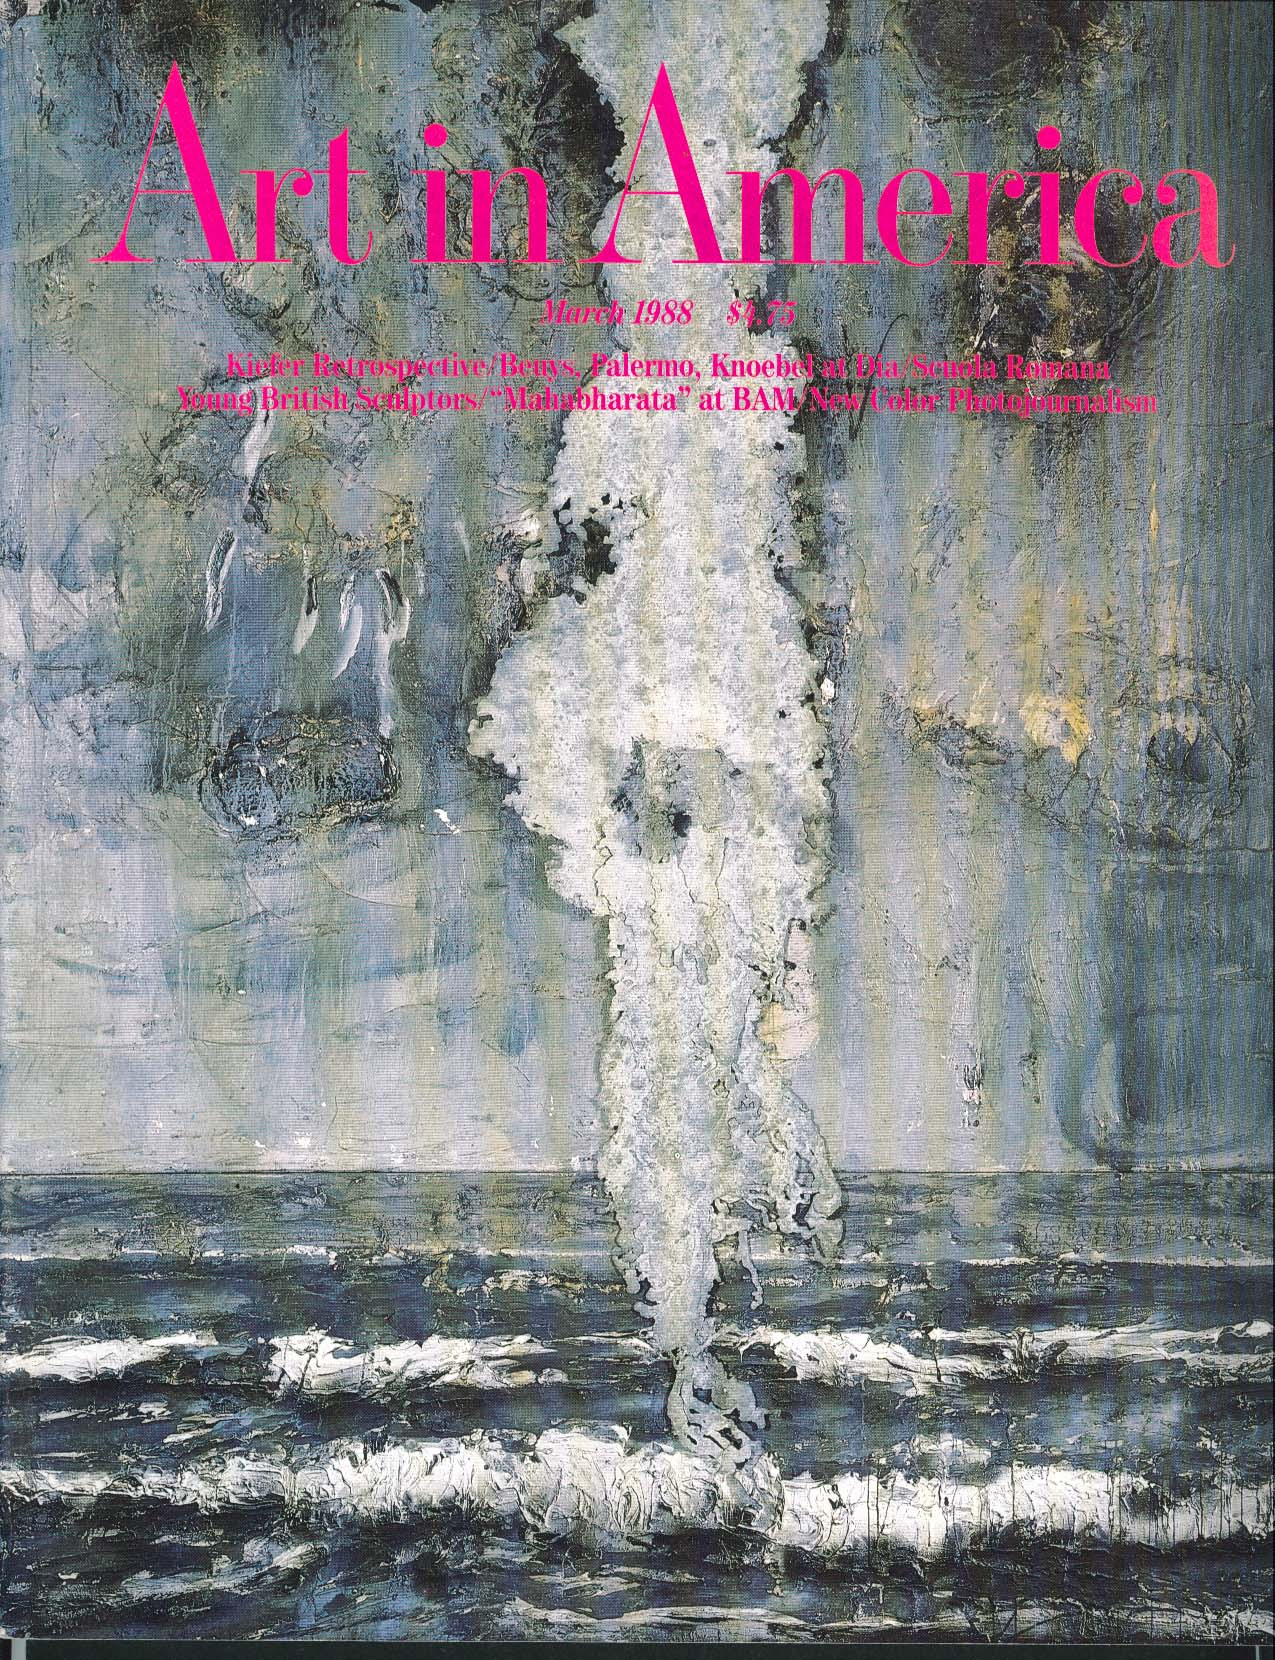 Image for ART IN AMERICA Kiefer Beuys Palermo Knoebel Dia Sculoa Romana Mahabharata 3 1988